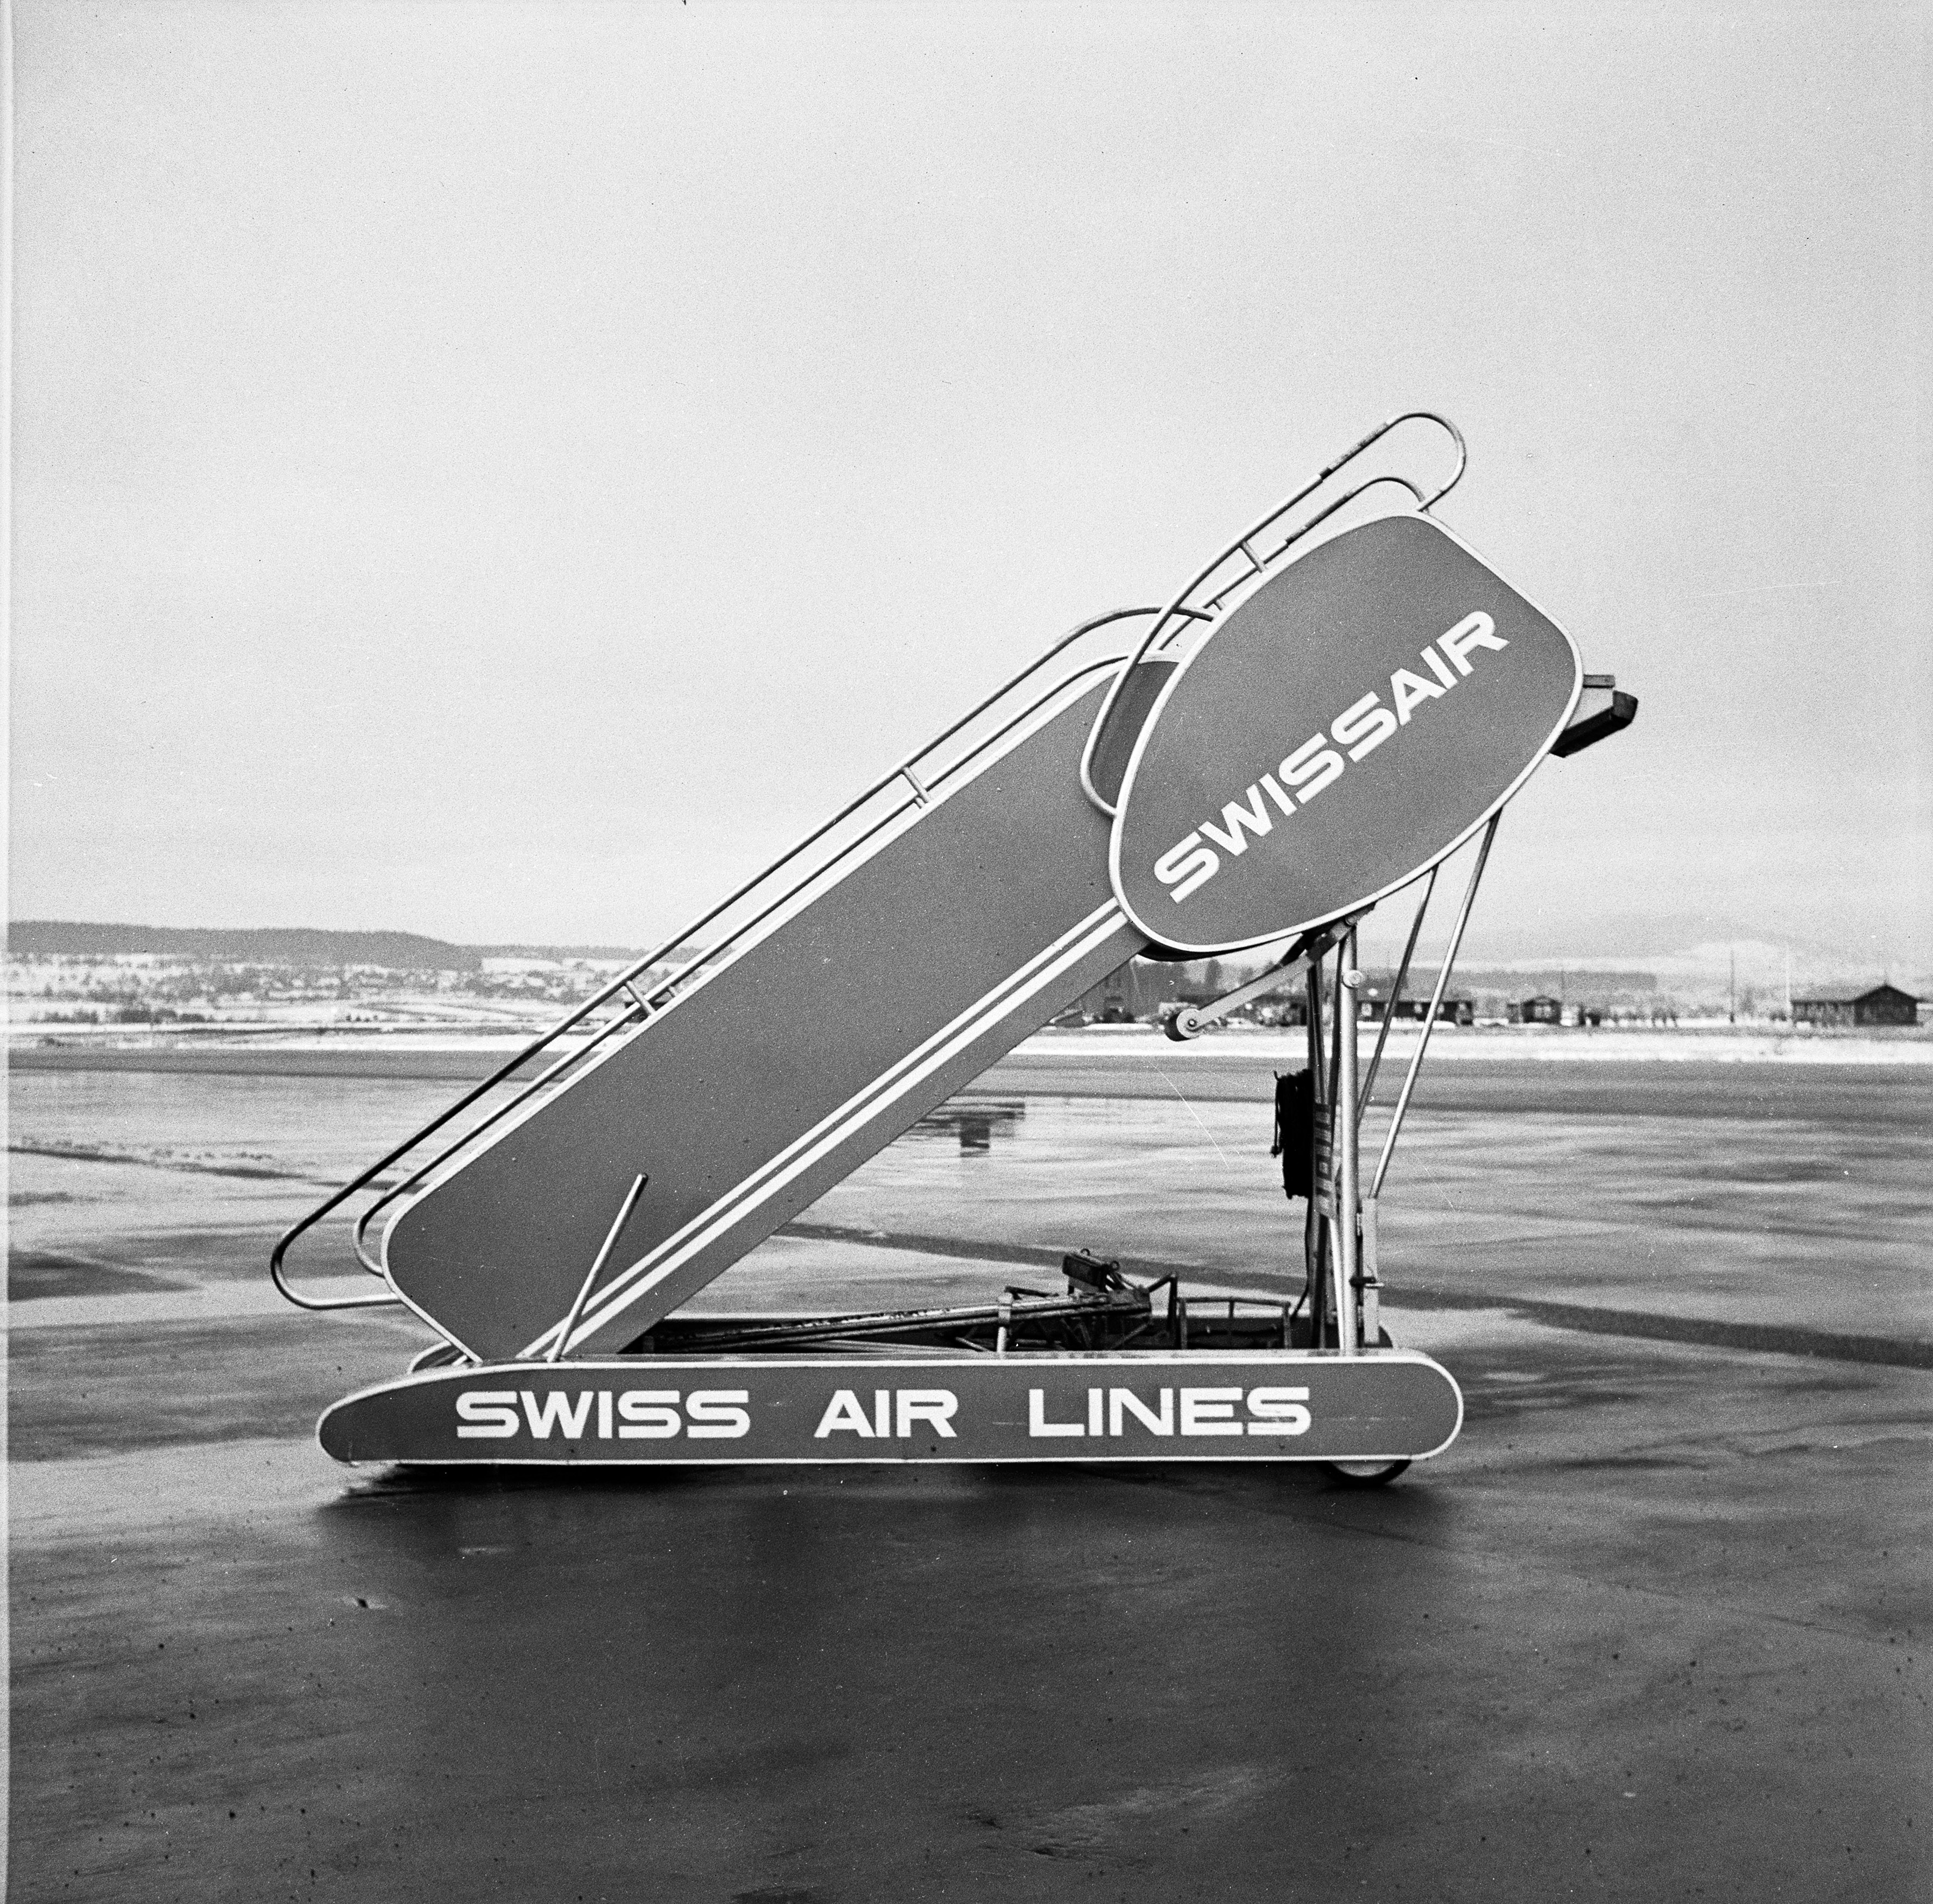 Mobile stairs at Zurich in the 1950s